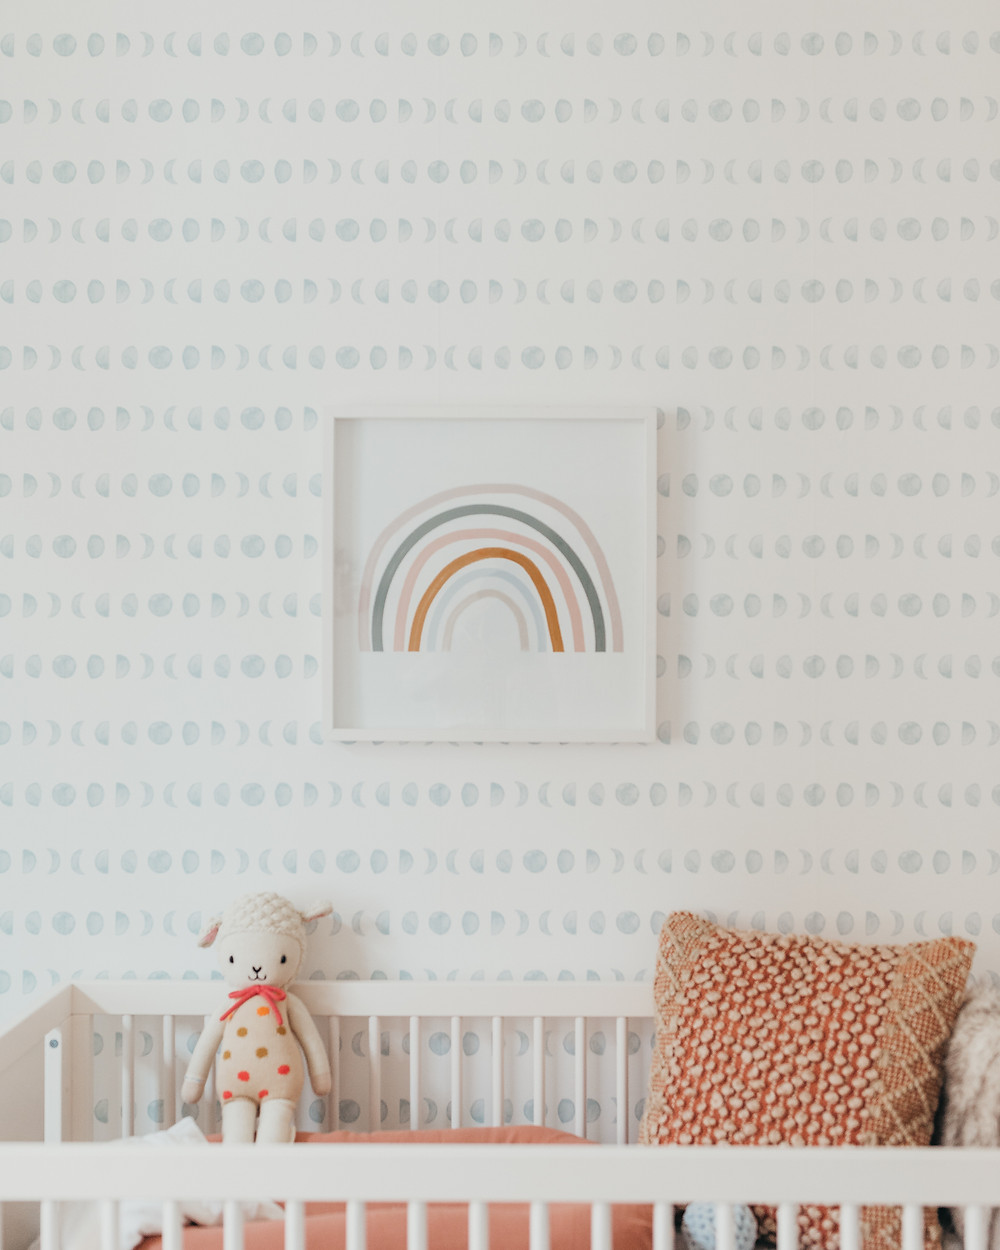 A framed rainbow print hanging above the crib in a nursery.